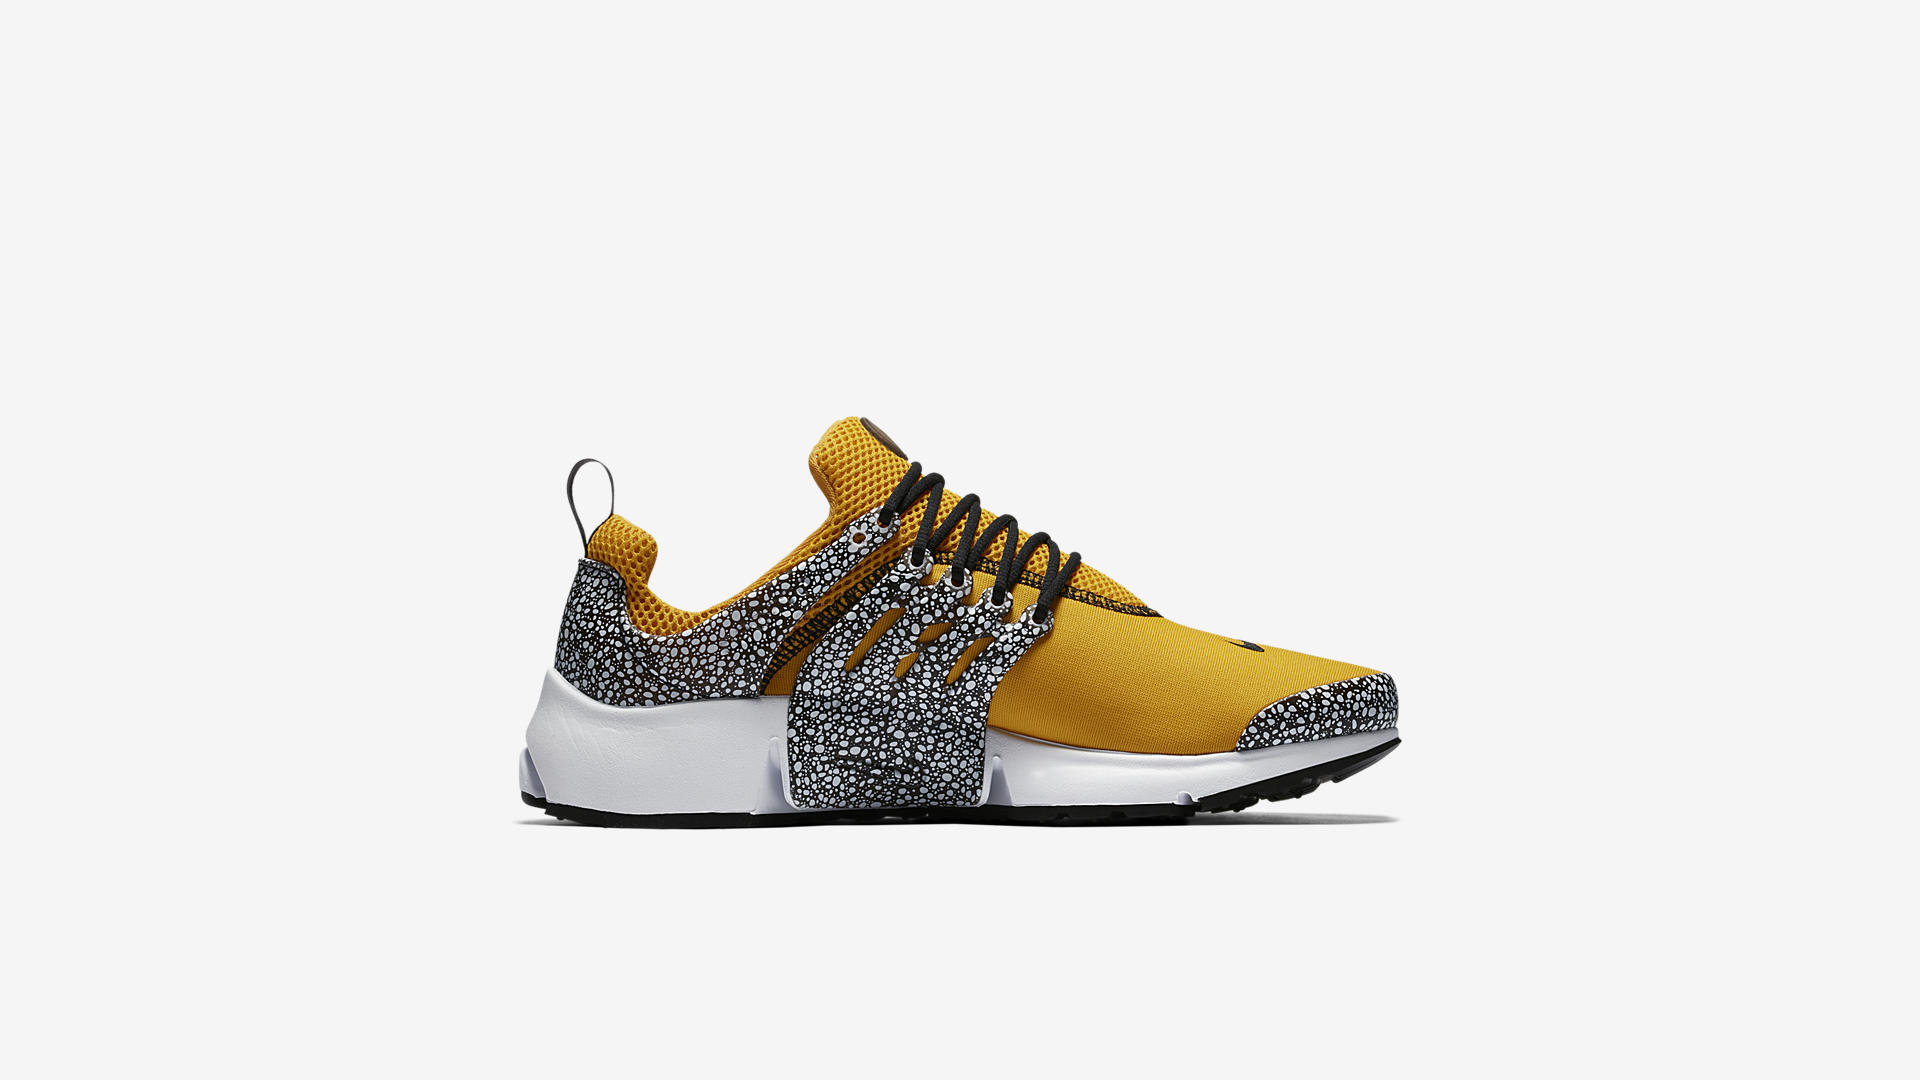 Nike Air Presto Gold Safari 886043 700 3